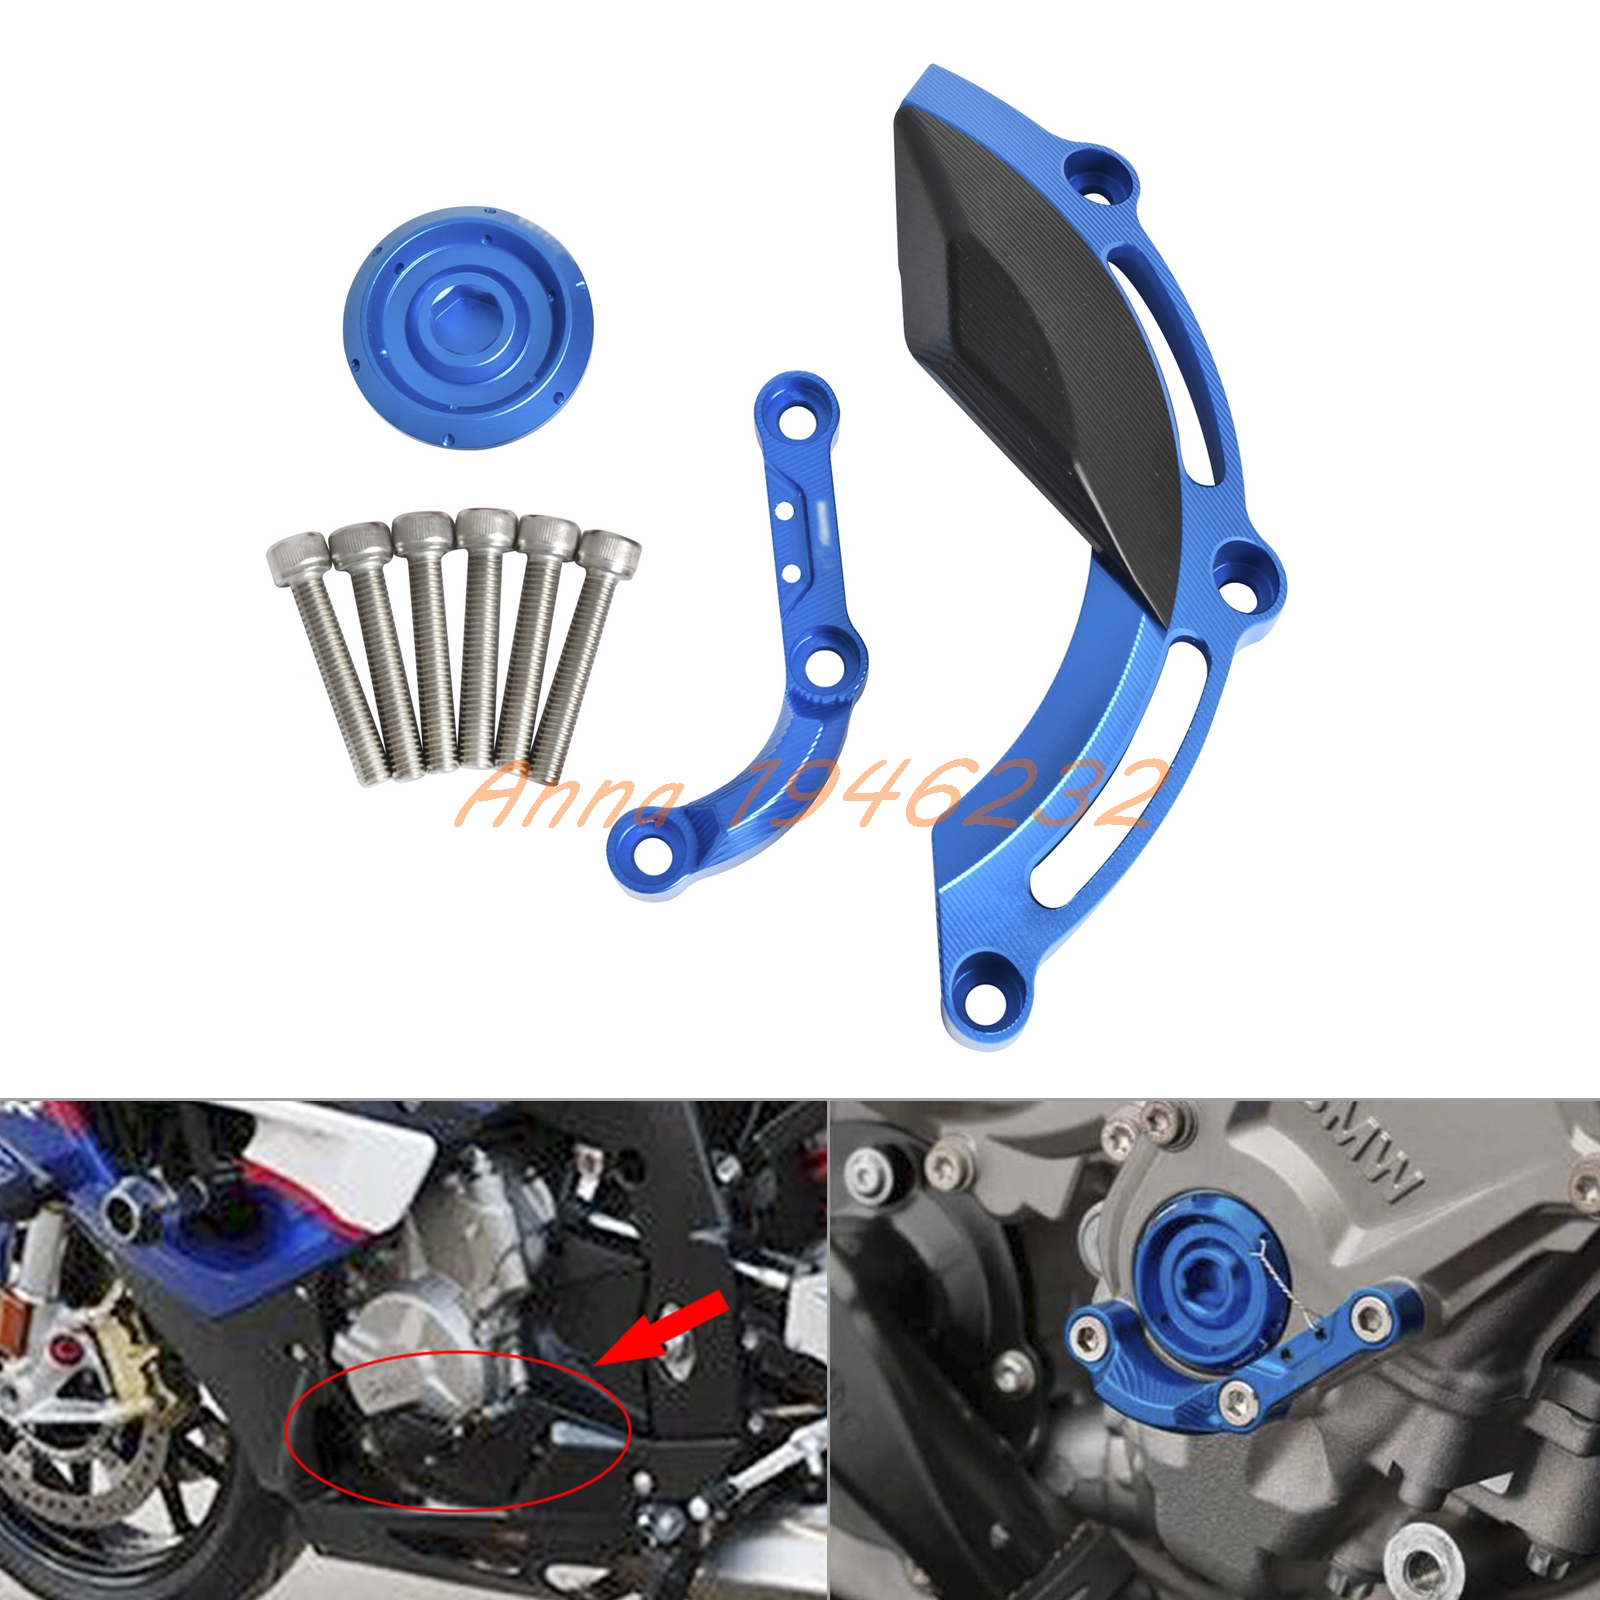 Motorcycle Engine Slider Cover Crash Protector For BMW S1000R 13-17 S1000RR  10-17 S1000XR 14-17 HP4 2012-2014